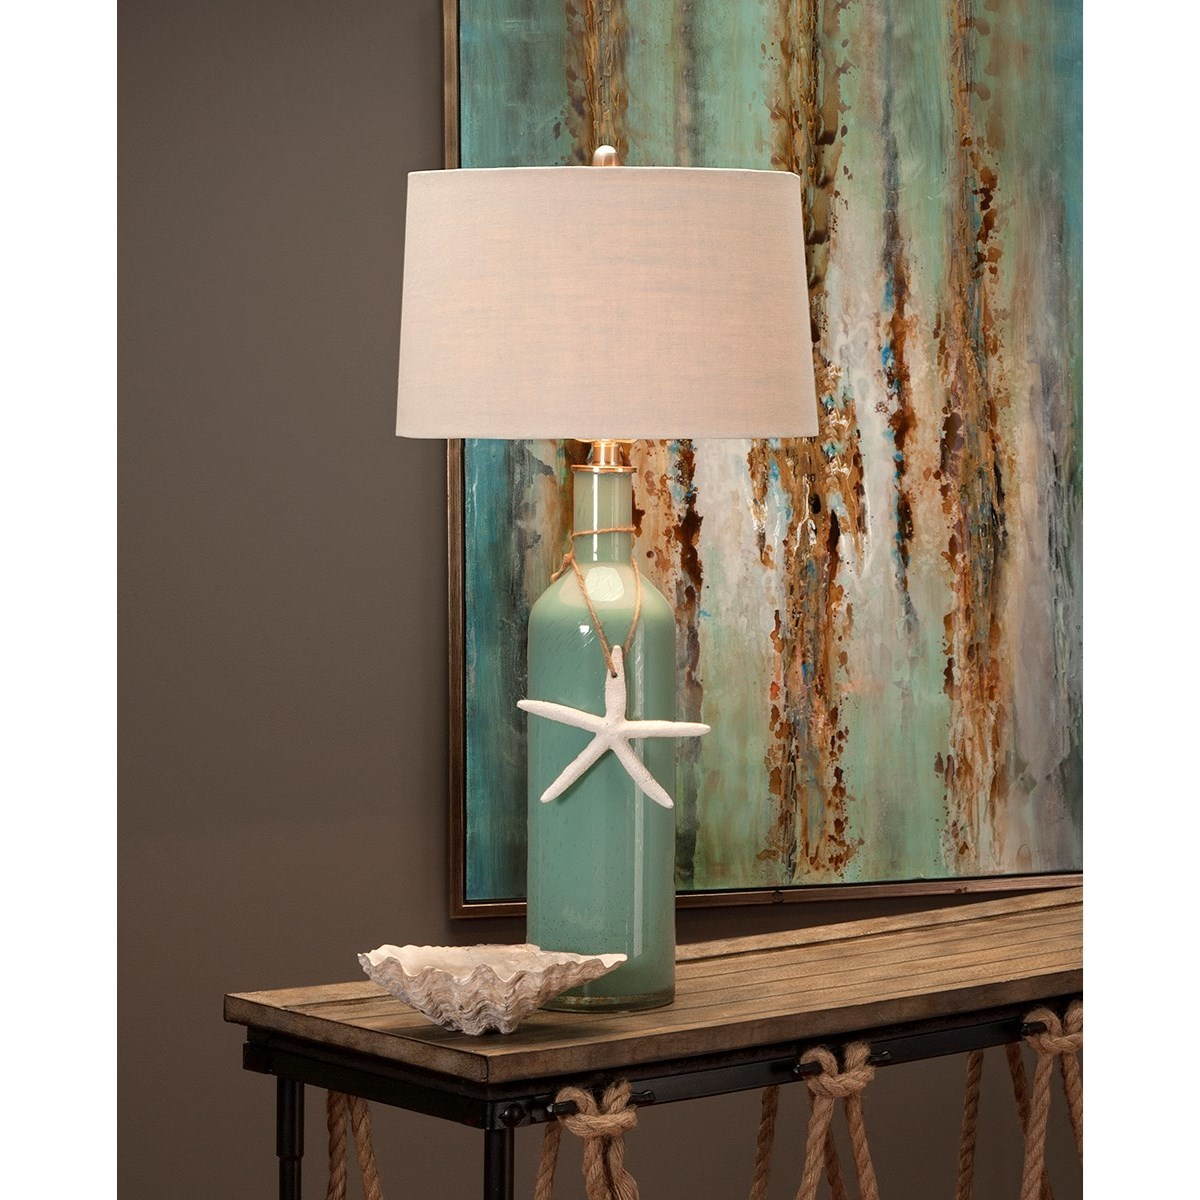 Becky Fletcher Hale Glass Coastal Table Lamp by IMAX Worldwide Home at Alison Craig Home Furnishings